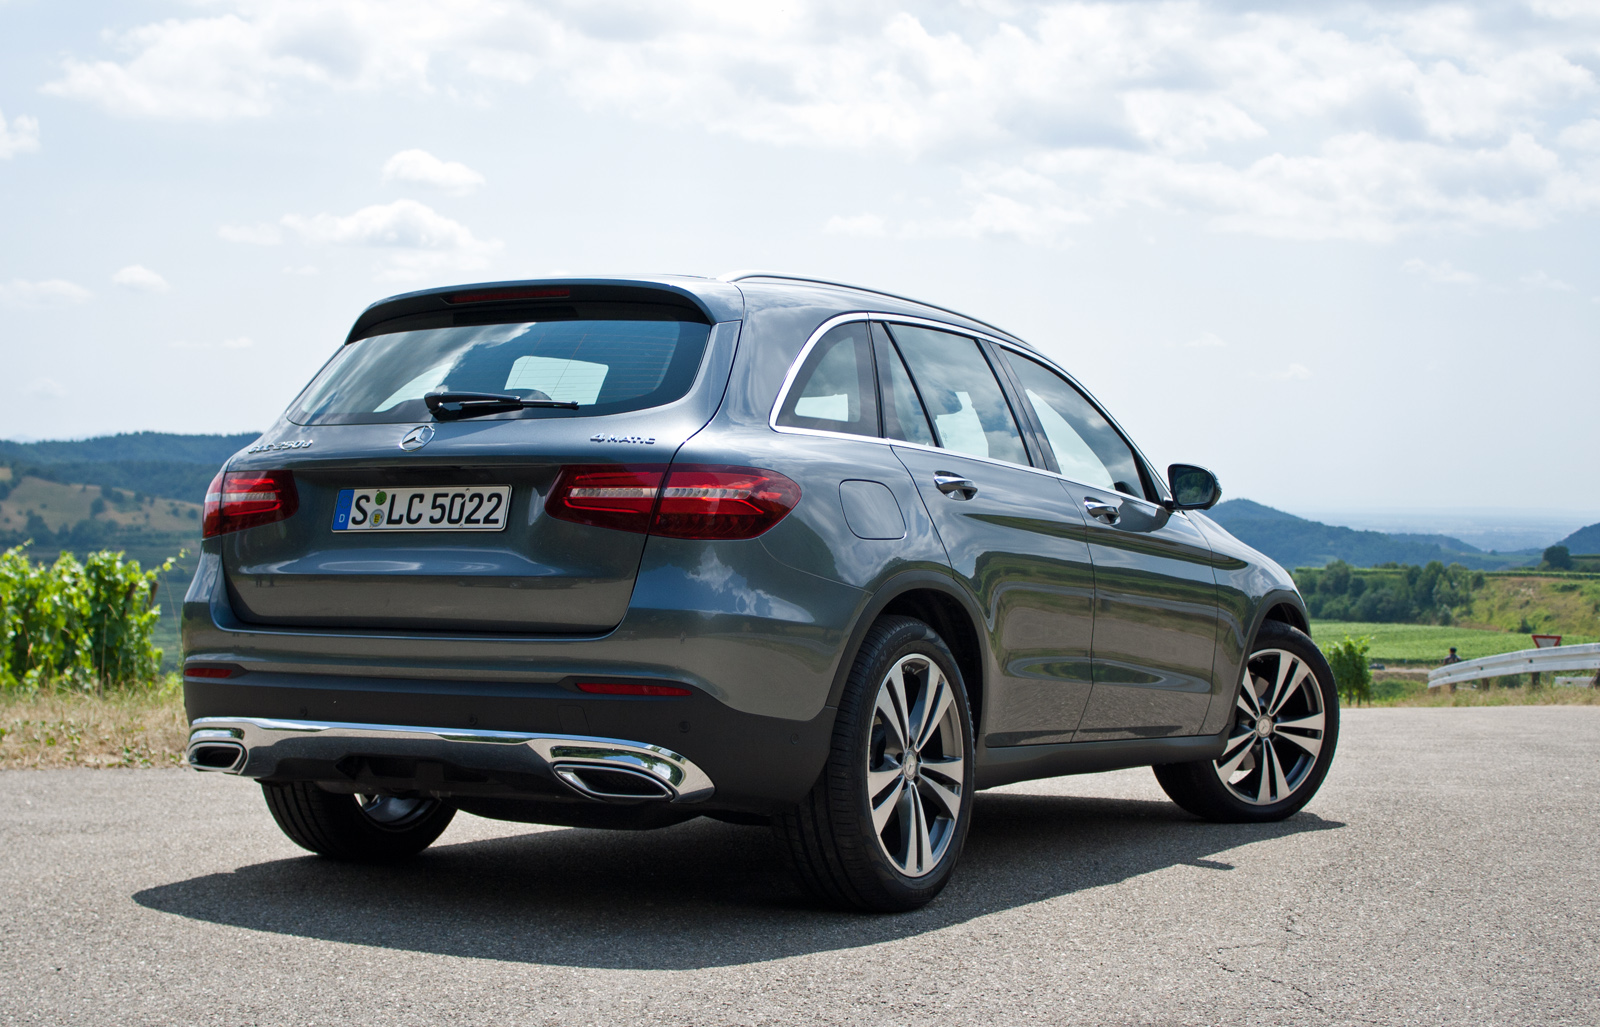 Glc coupe mercedes benz canada new and cpo inventory for Mercedes benz cpo warranty coverage